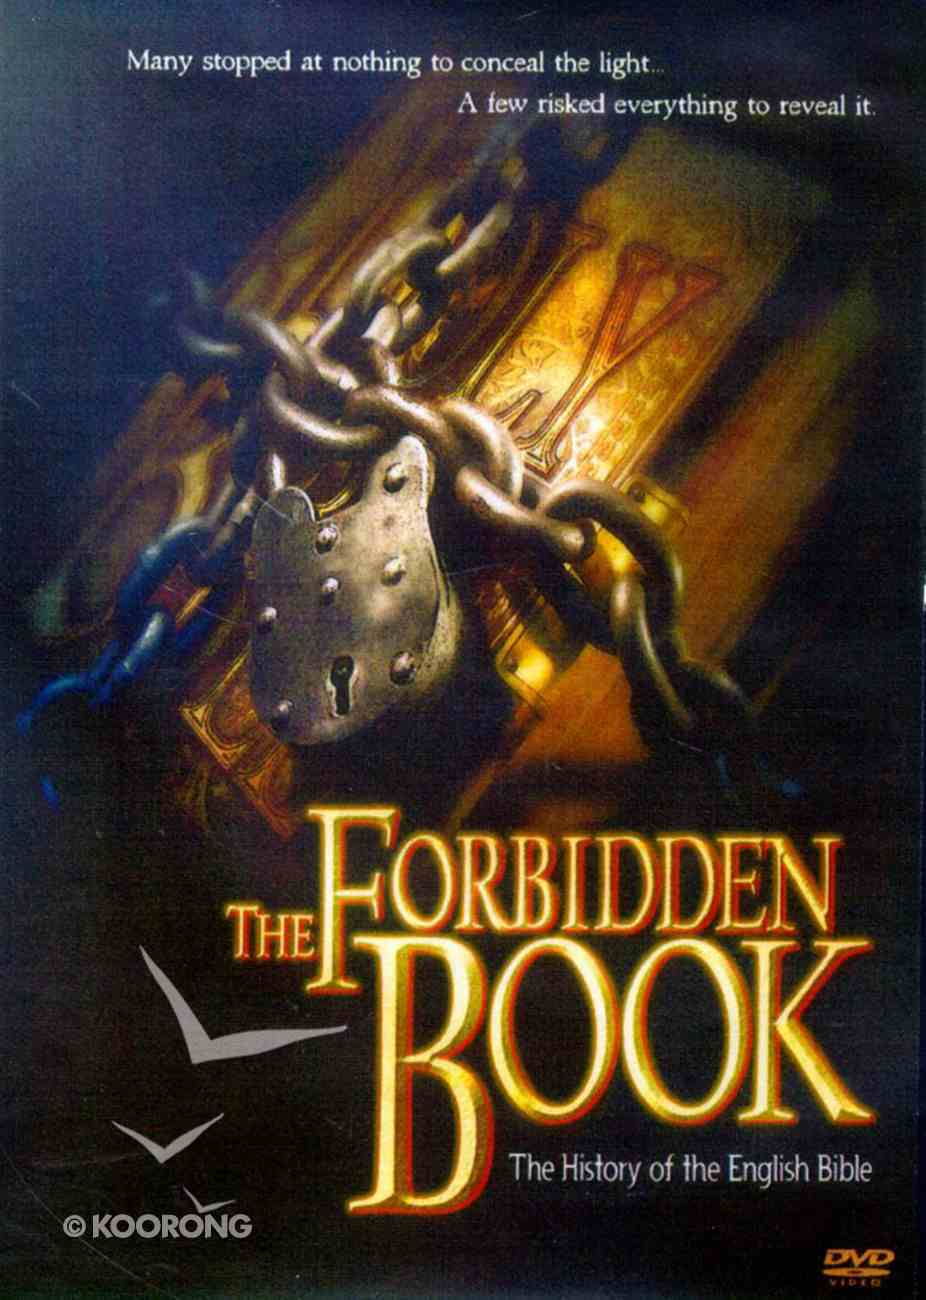 The Forbidden Book DVD